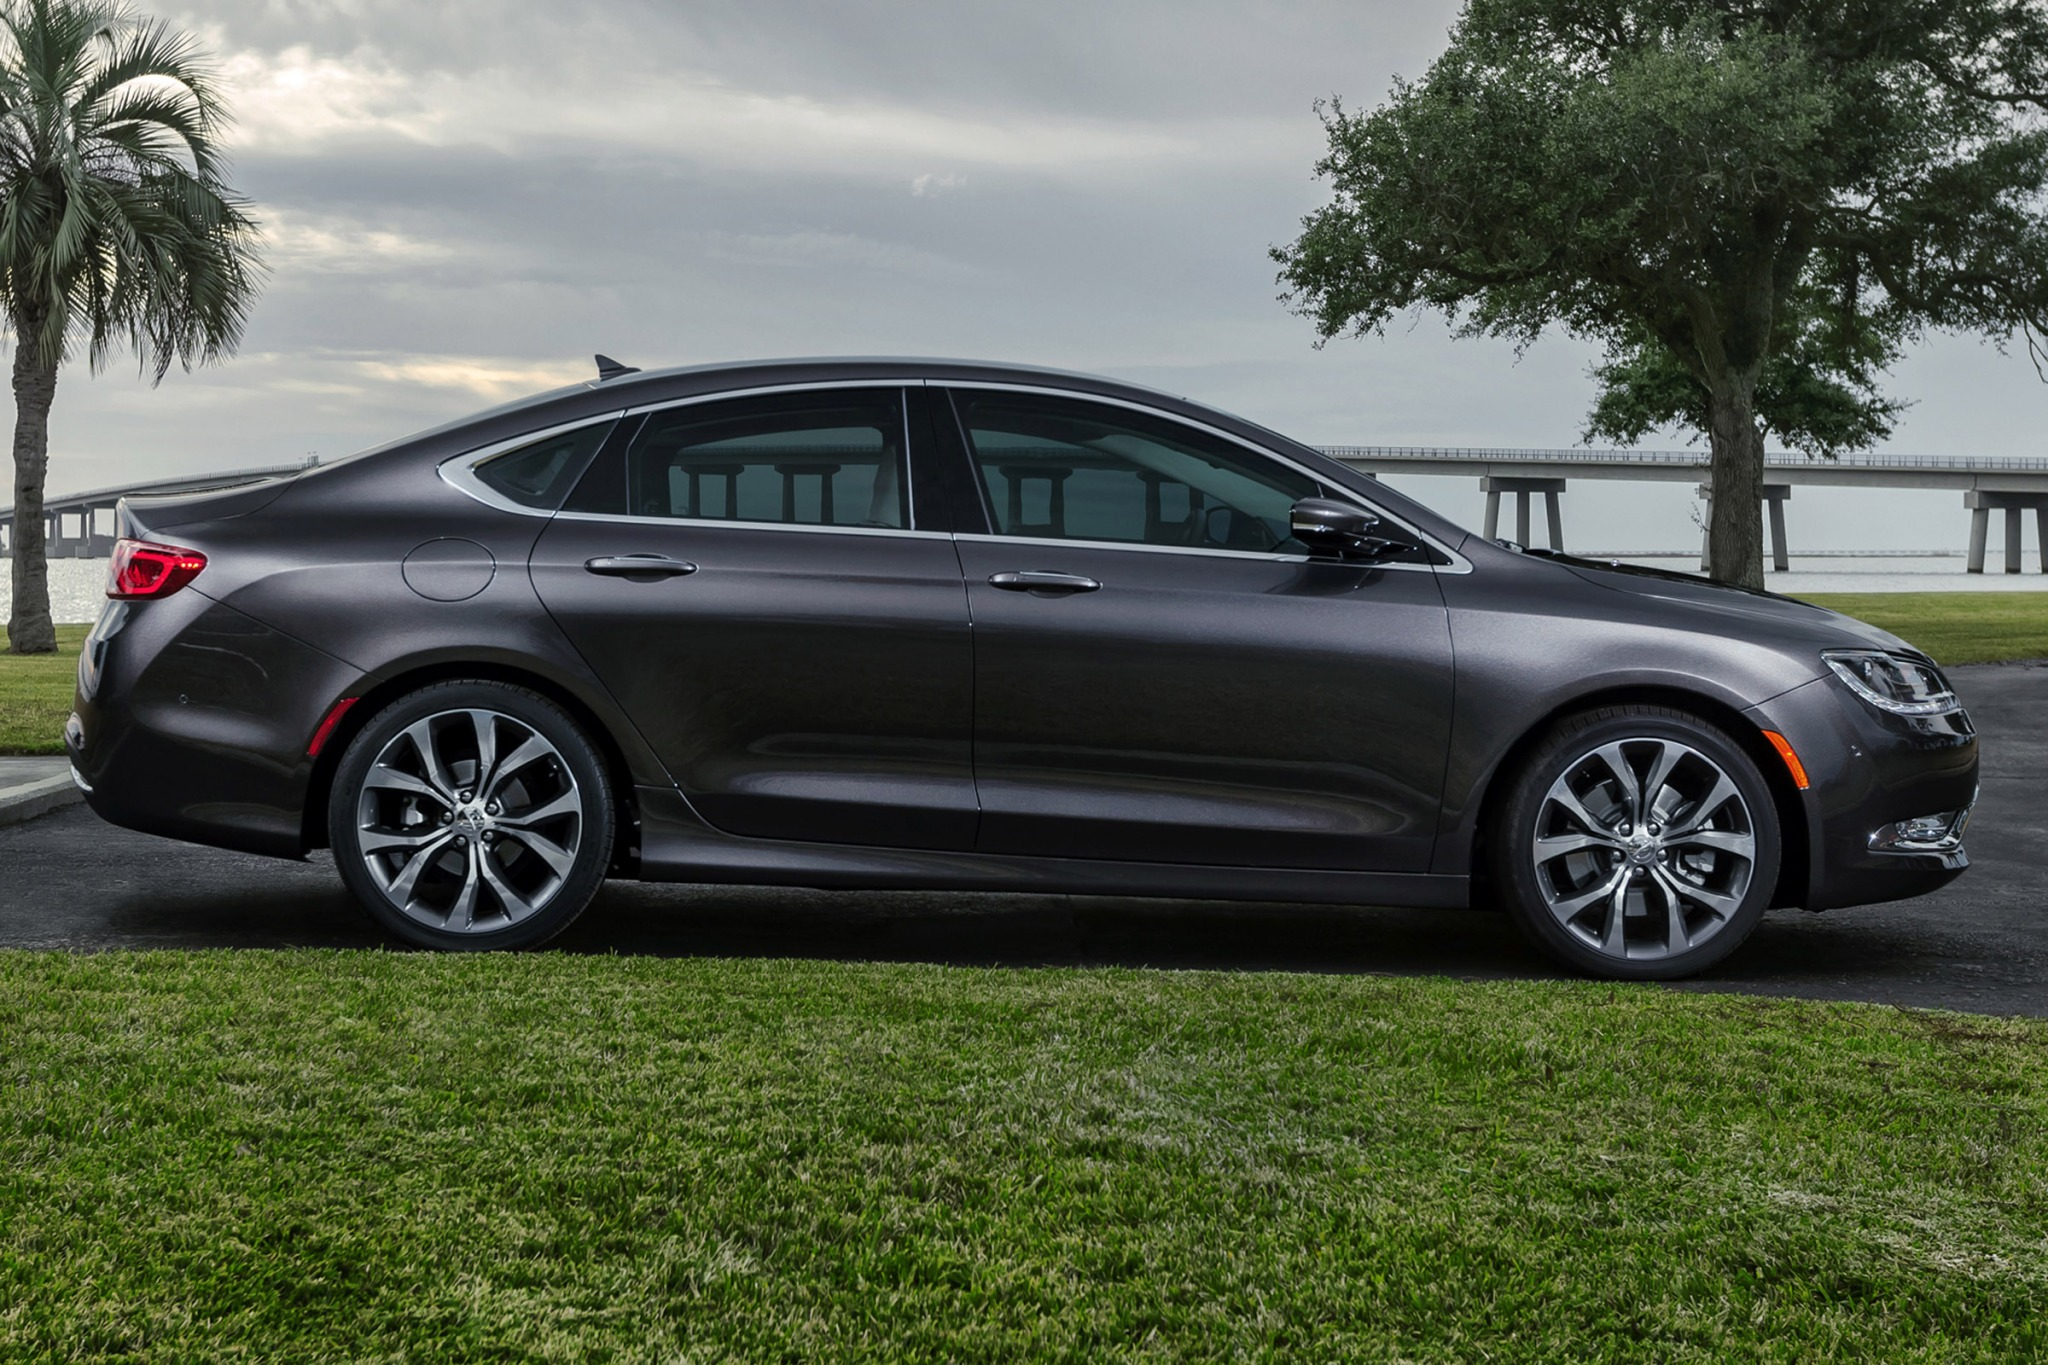 2015 Chrysler 200 C Sedan exterior #5